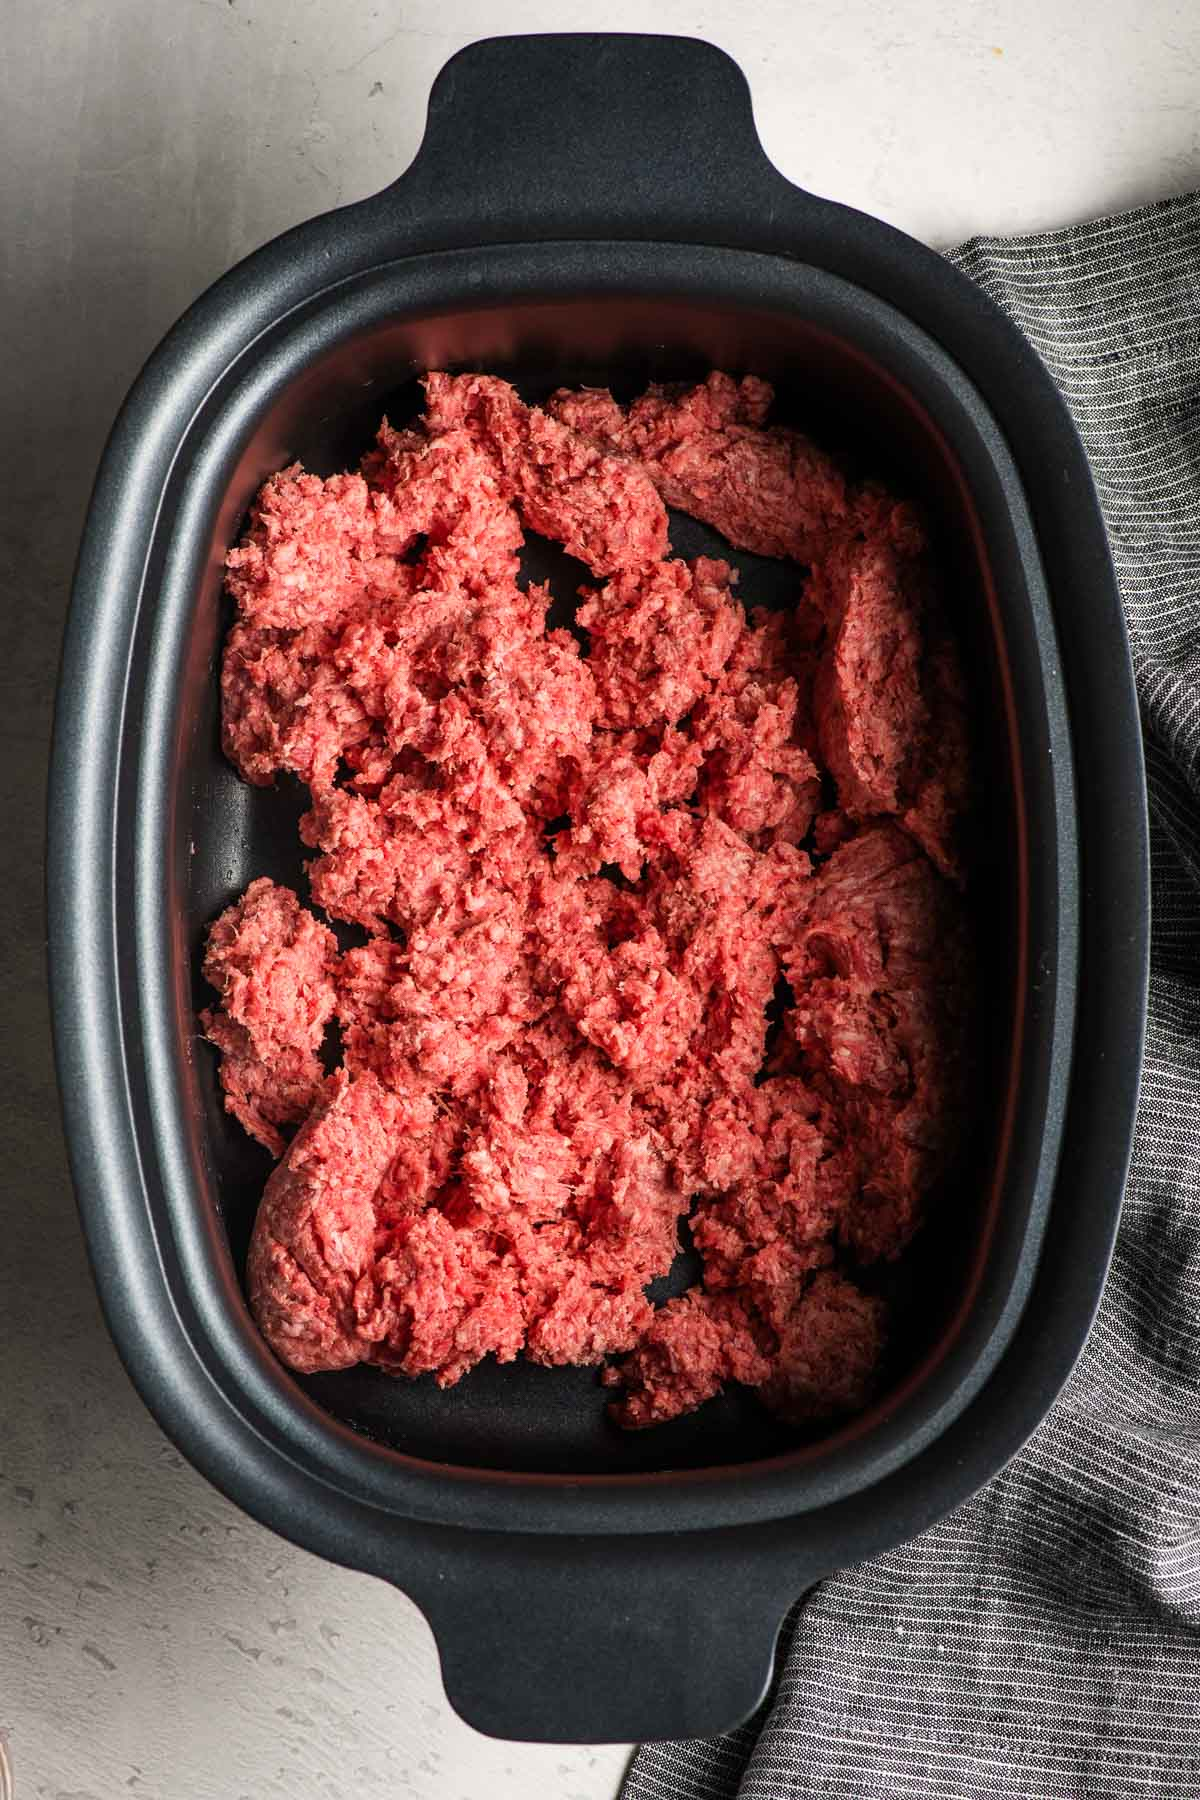 Raw Ground Beef in a slow cooker.